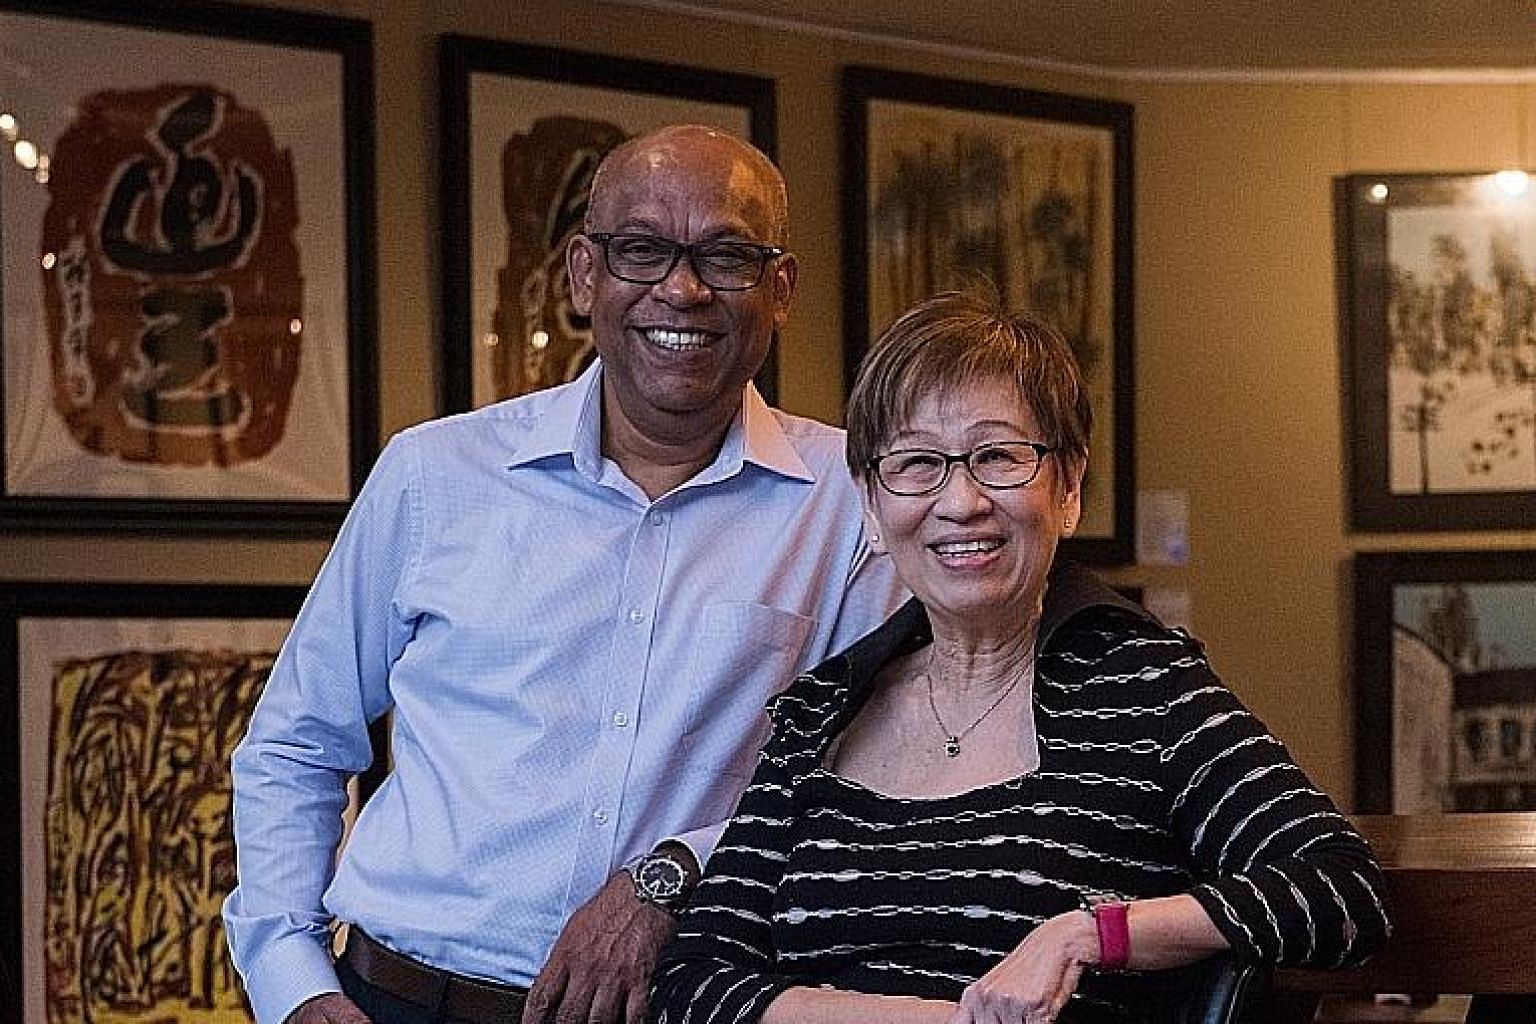 Social service veterans Abhimanyau Pal, 53, and June Tham, 67, said staff are now better trained, and have more professional and career development opportunities, which lead to better-run services. The recommended salary for a social worker fresh out